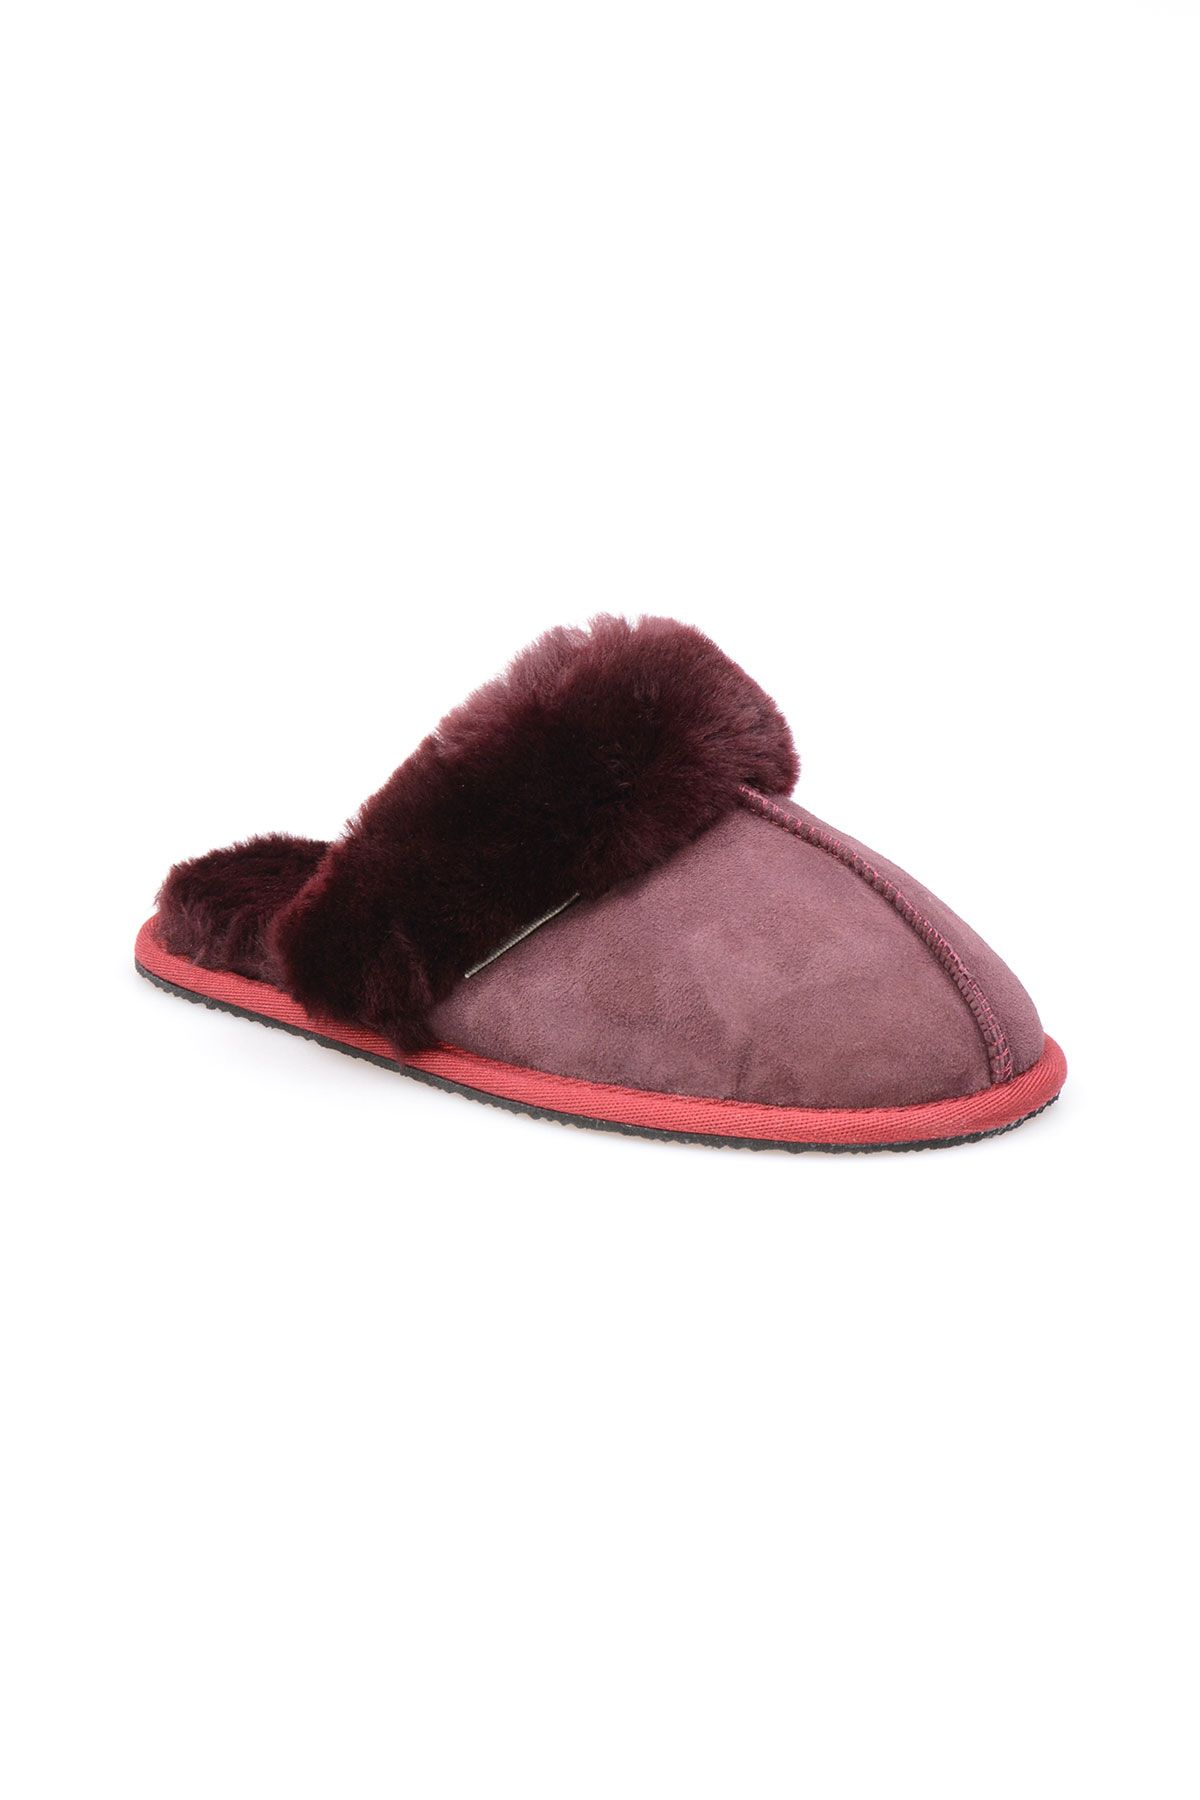 Pegia Women House Slippers From Genuine Suede And Sheepskin 191091 Claret red